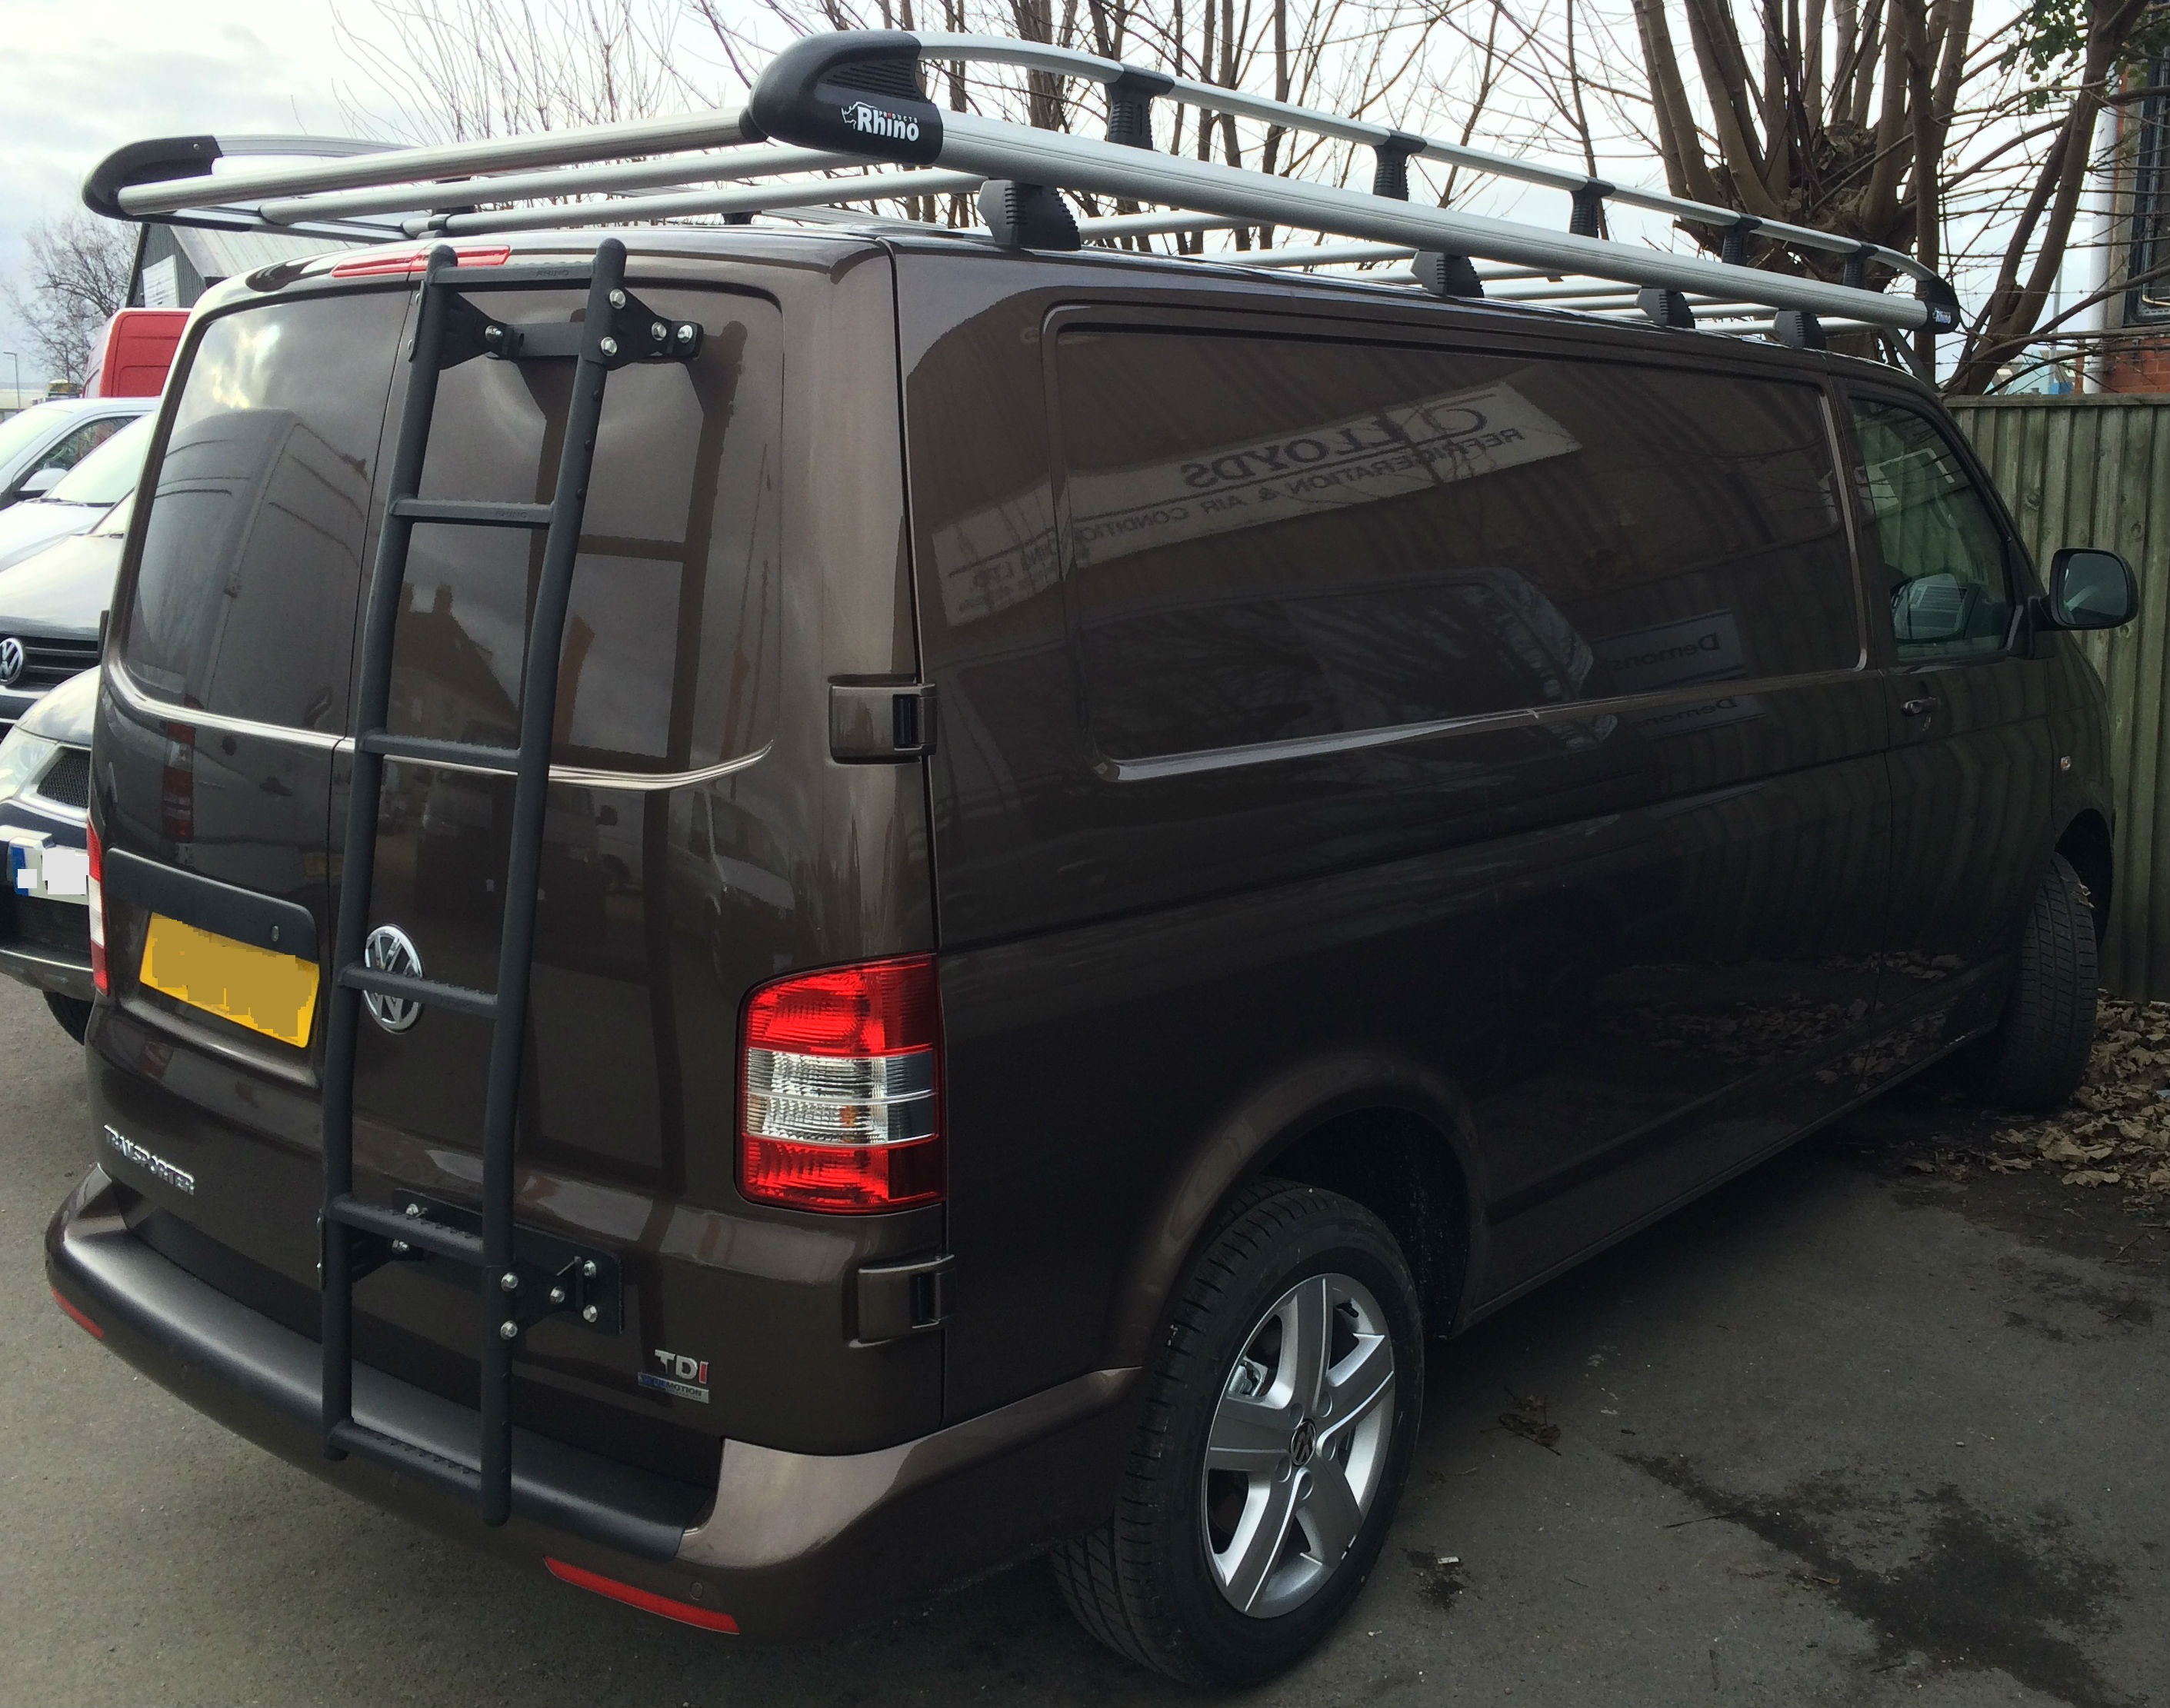 t5-roof-rack-and-rear-ladder.JPG